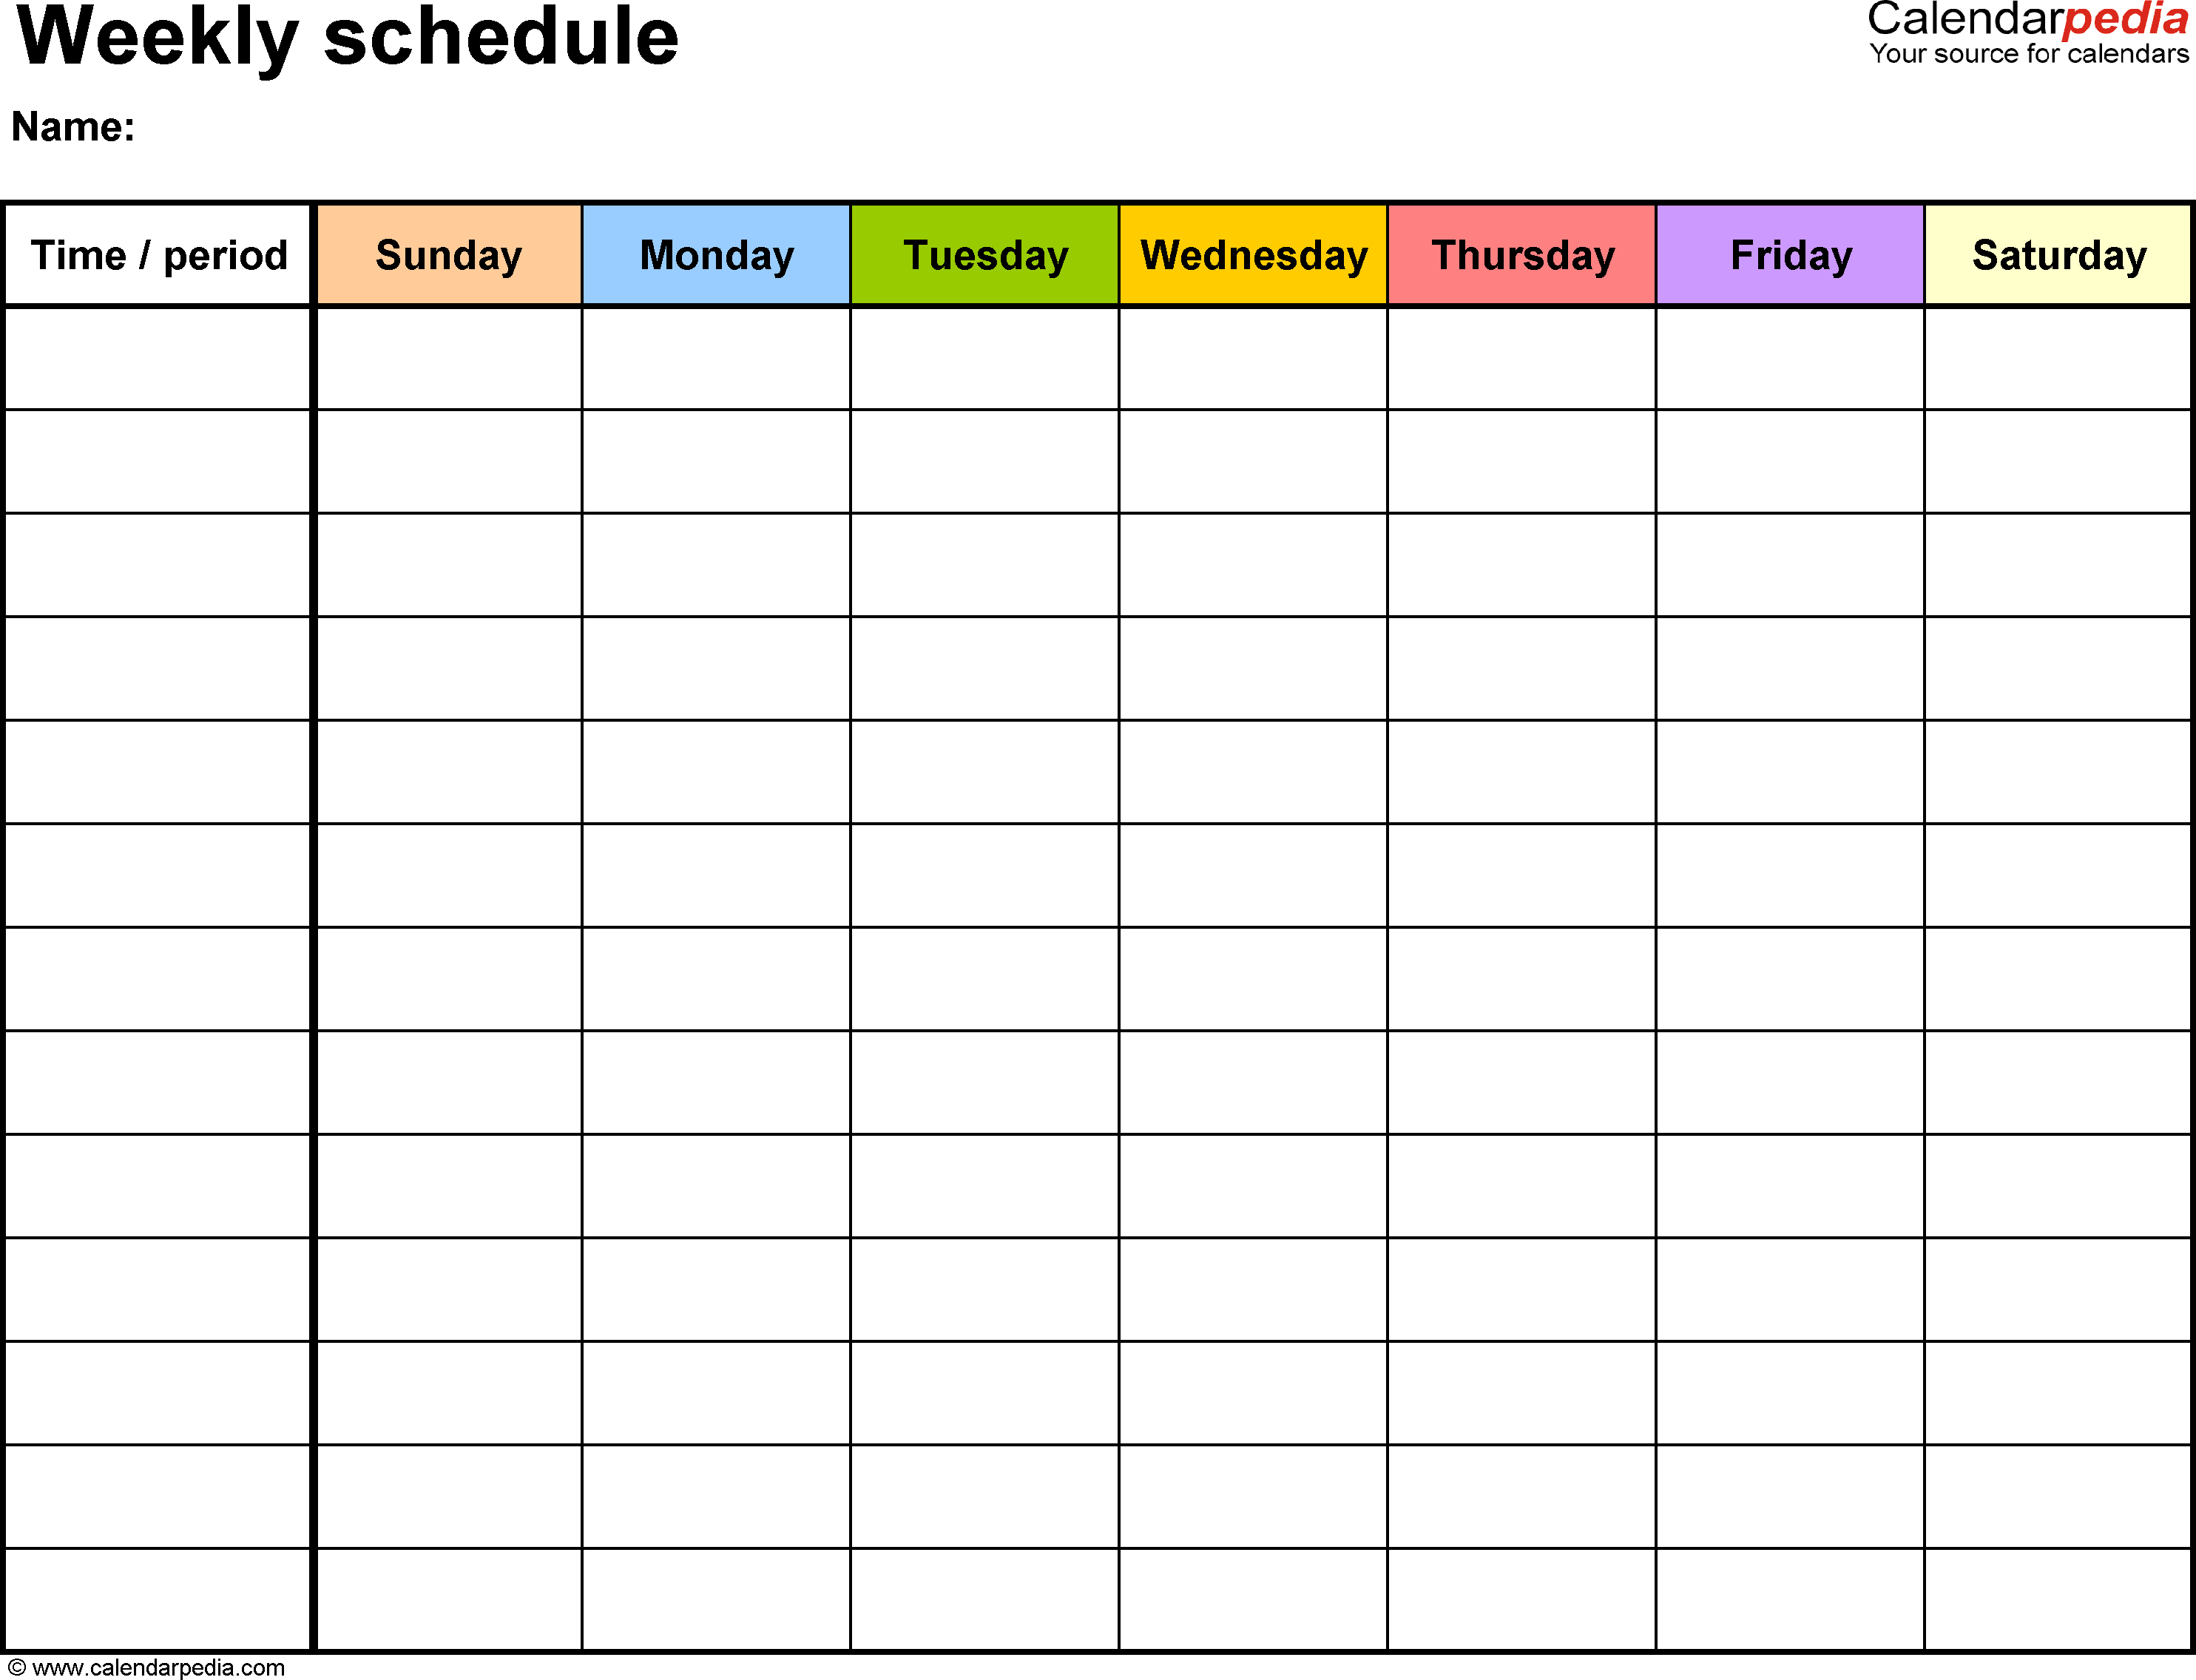 Weekly Schedule Template For Word Version 13: Landscape, 1 Page with regard to 7 Day Calendar Template Printable